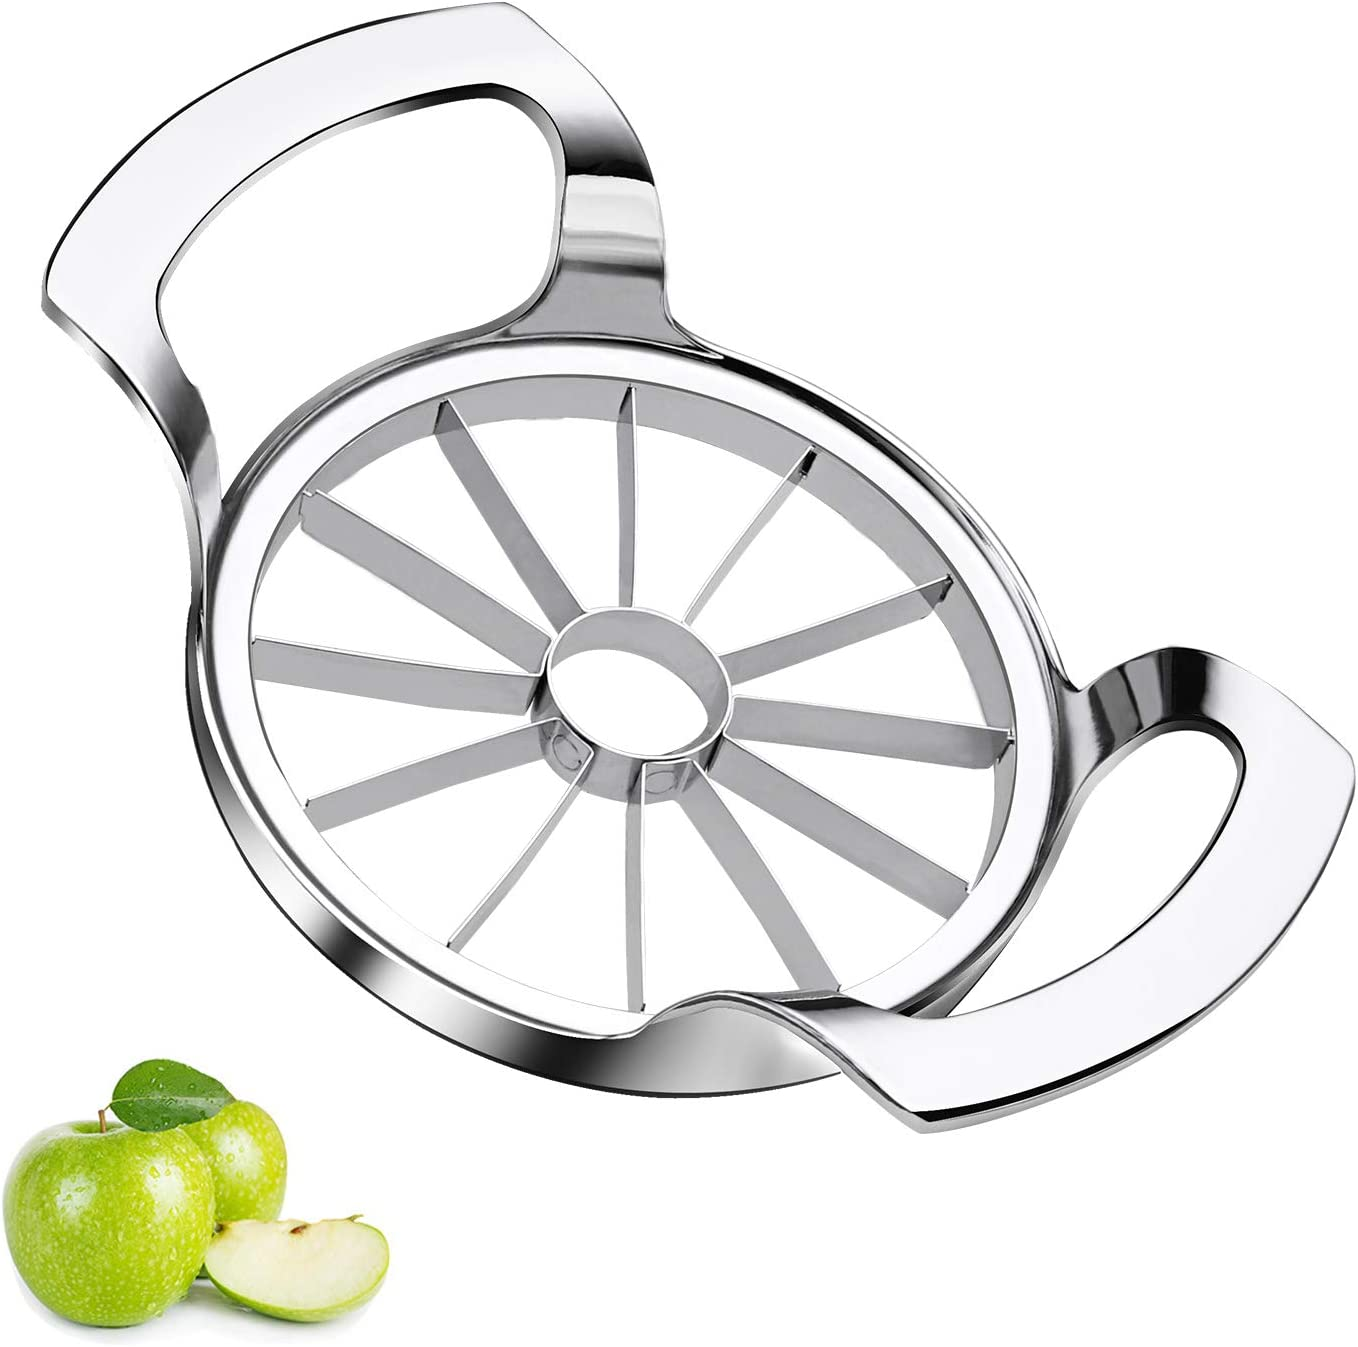 Sinnsally Apple Slicer Upgraded Version 12-Blade Extra Large Apple Corer Peeler,Stainless Steel Ultra-Sharp Fruit Corer & Slicer,Apple Cutter,Wedger,Decorer Tool,Divider for Up to 4 Inches Apples